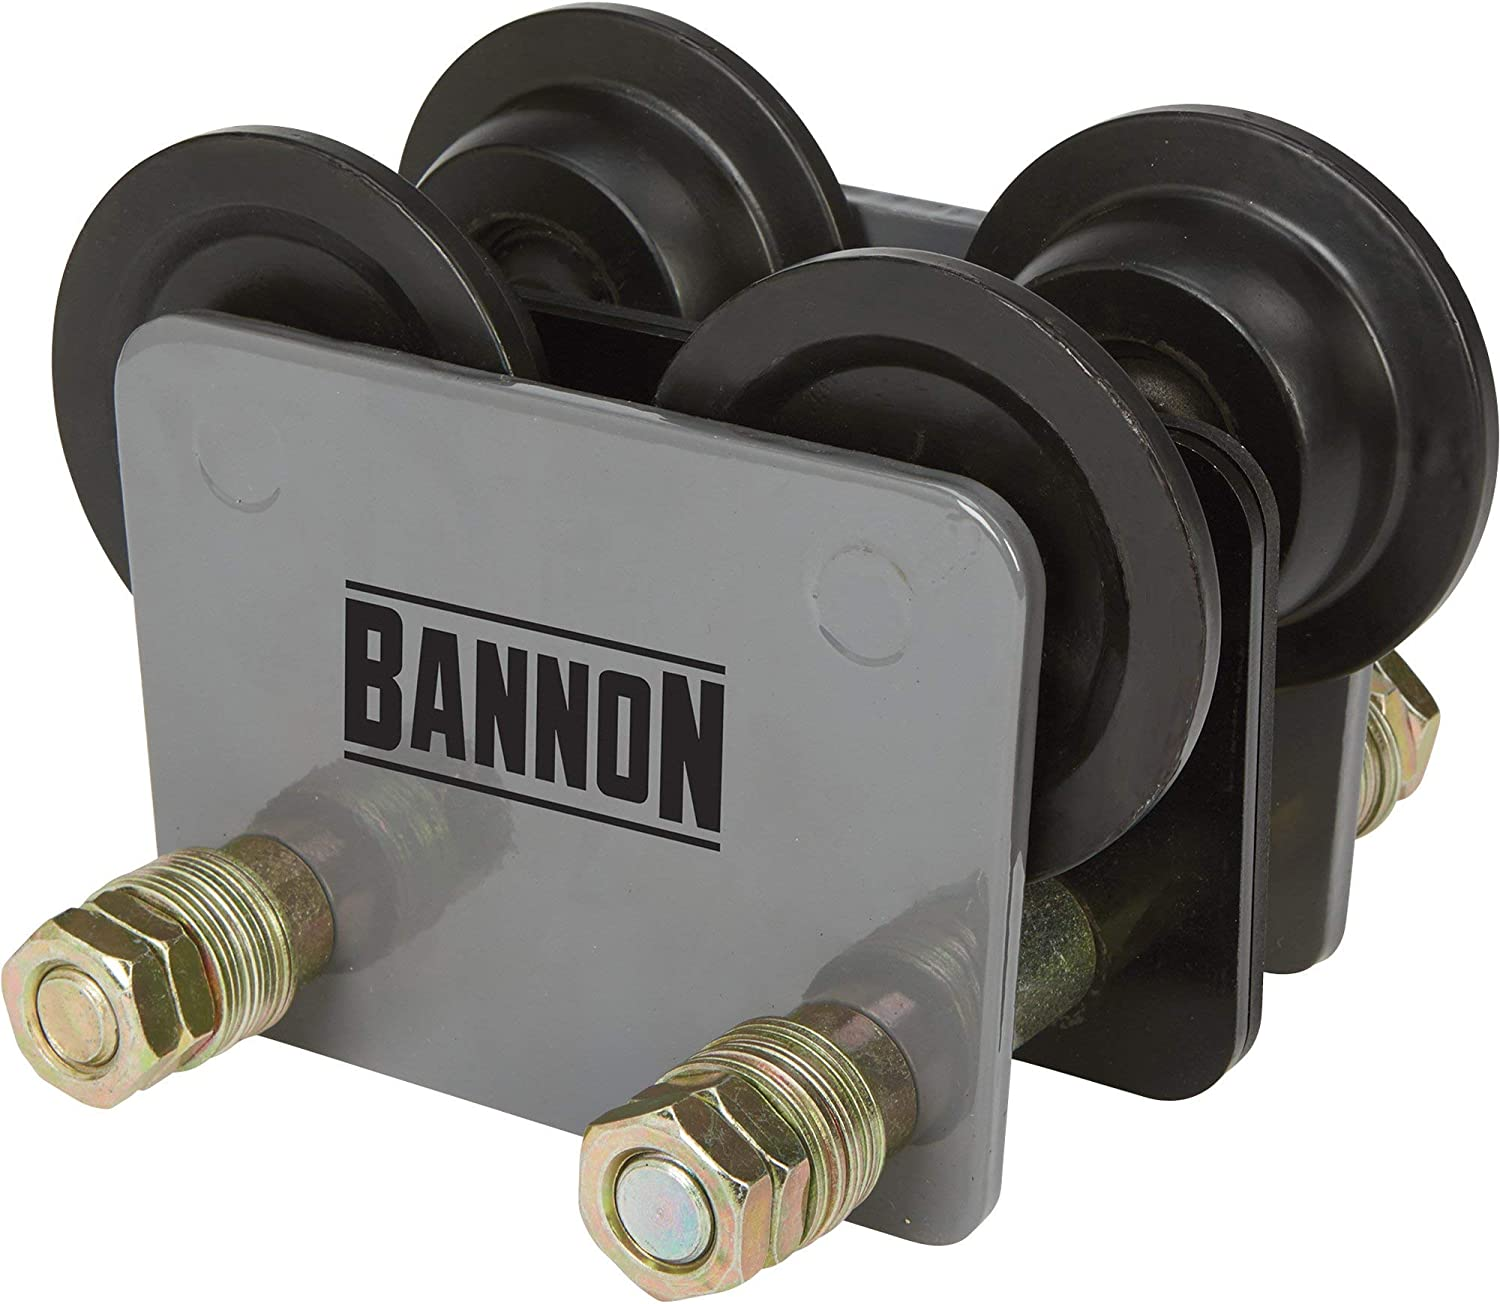 Capacity Works with Bannon Compact Electric Cable Hoists 1100-Lb Plain Trolley